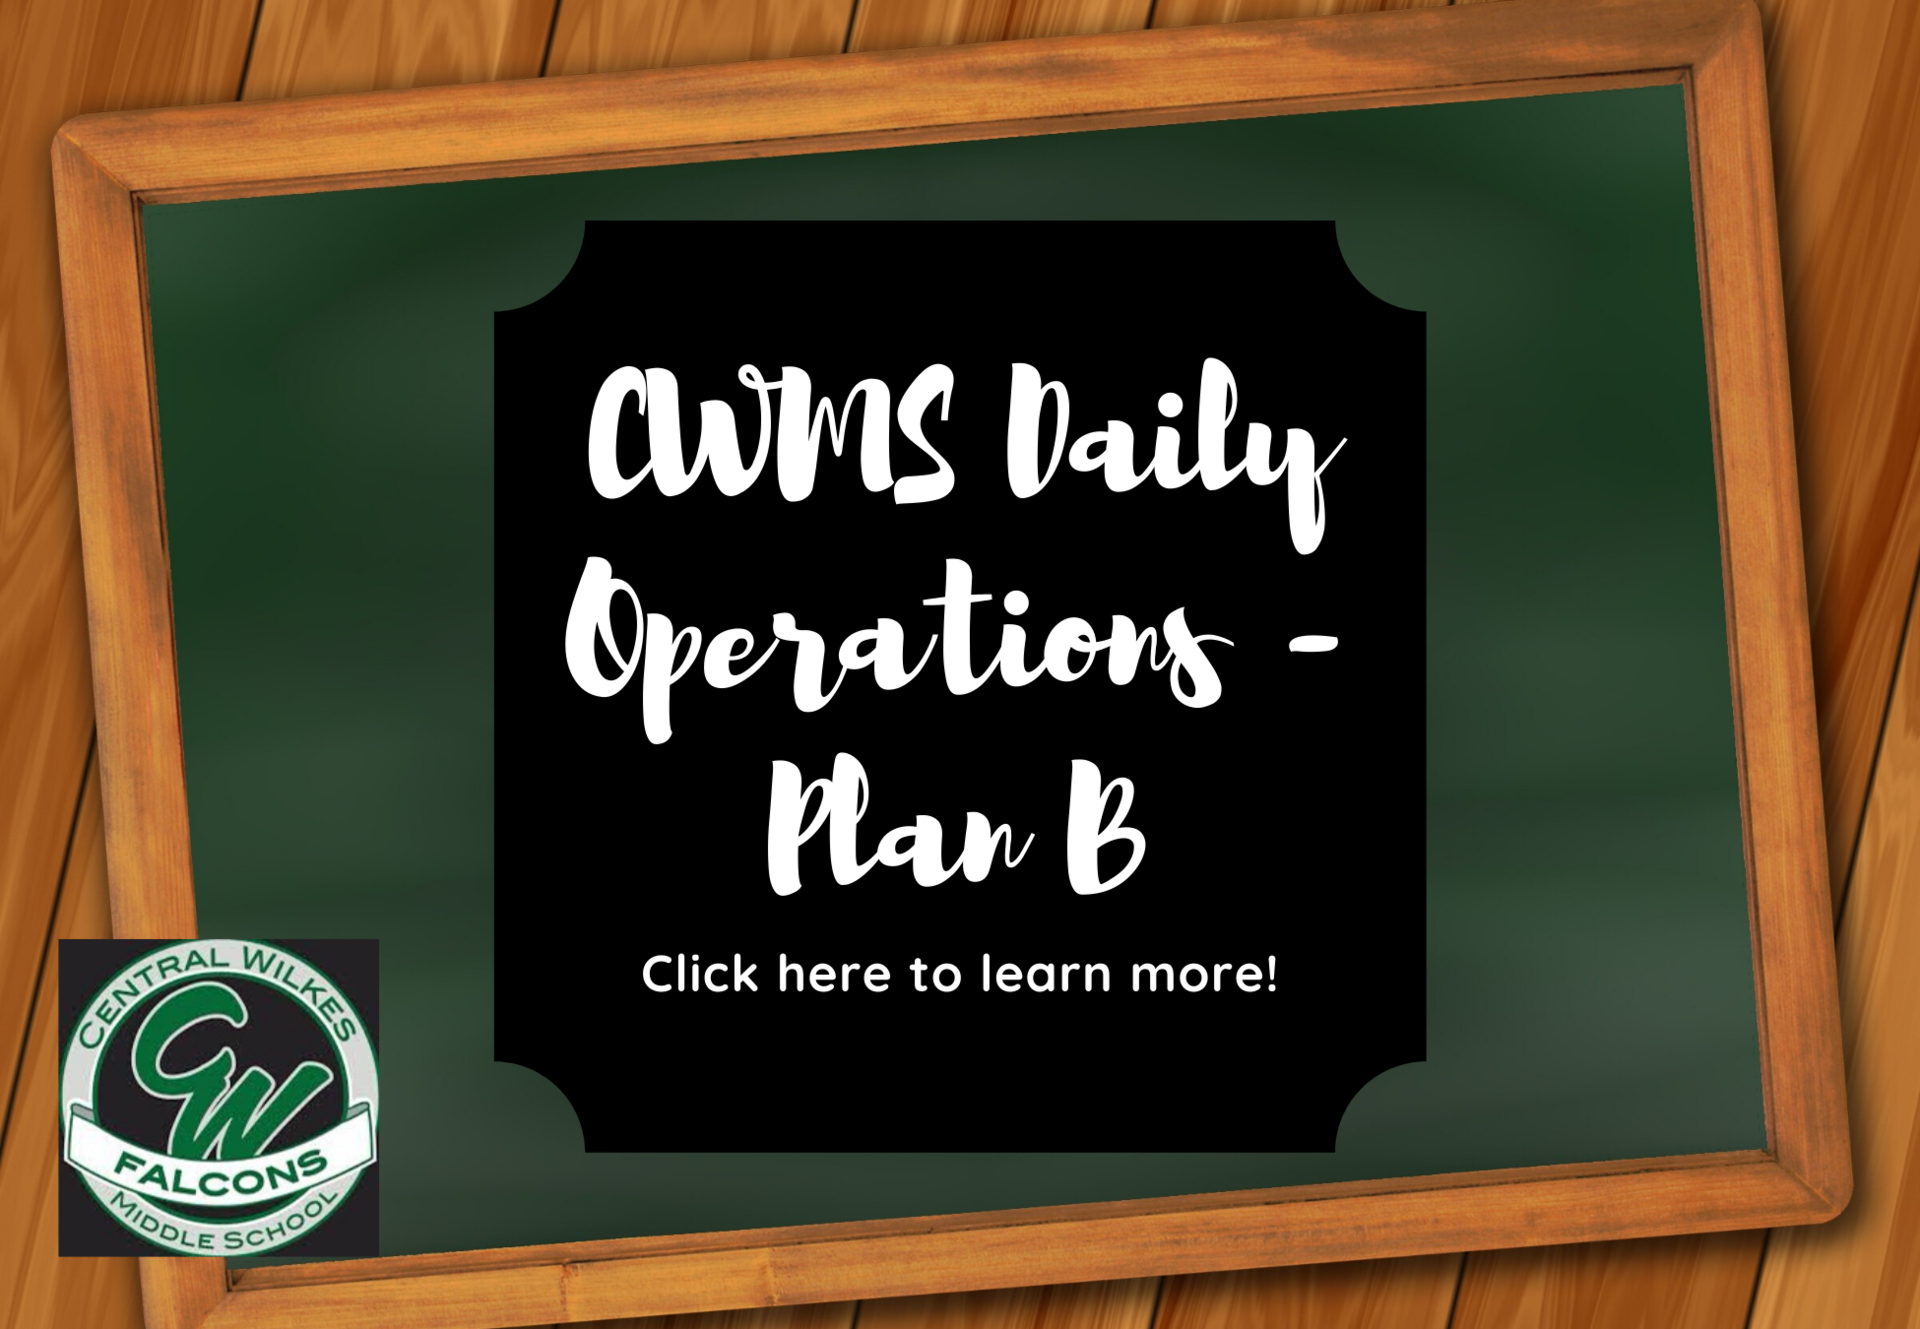 daily operations for plan b cwms